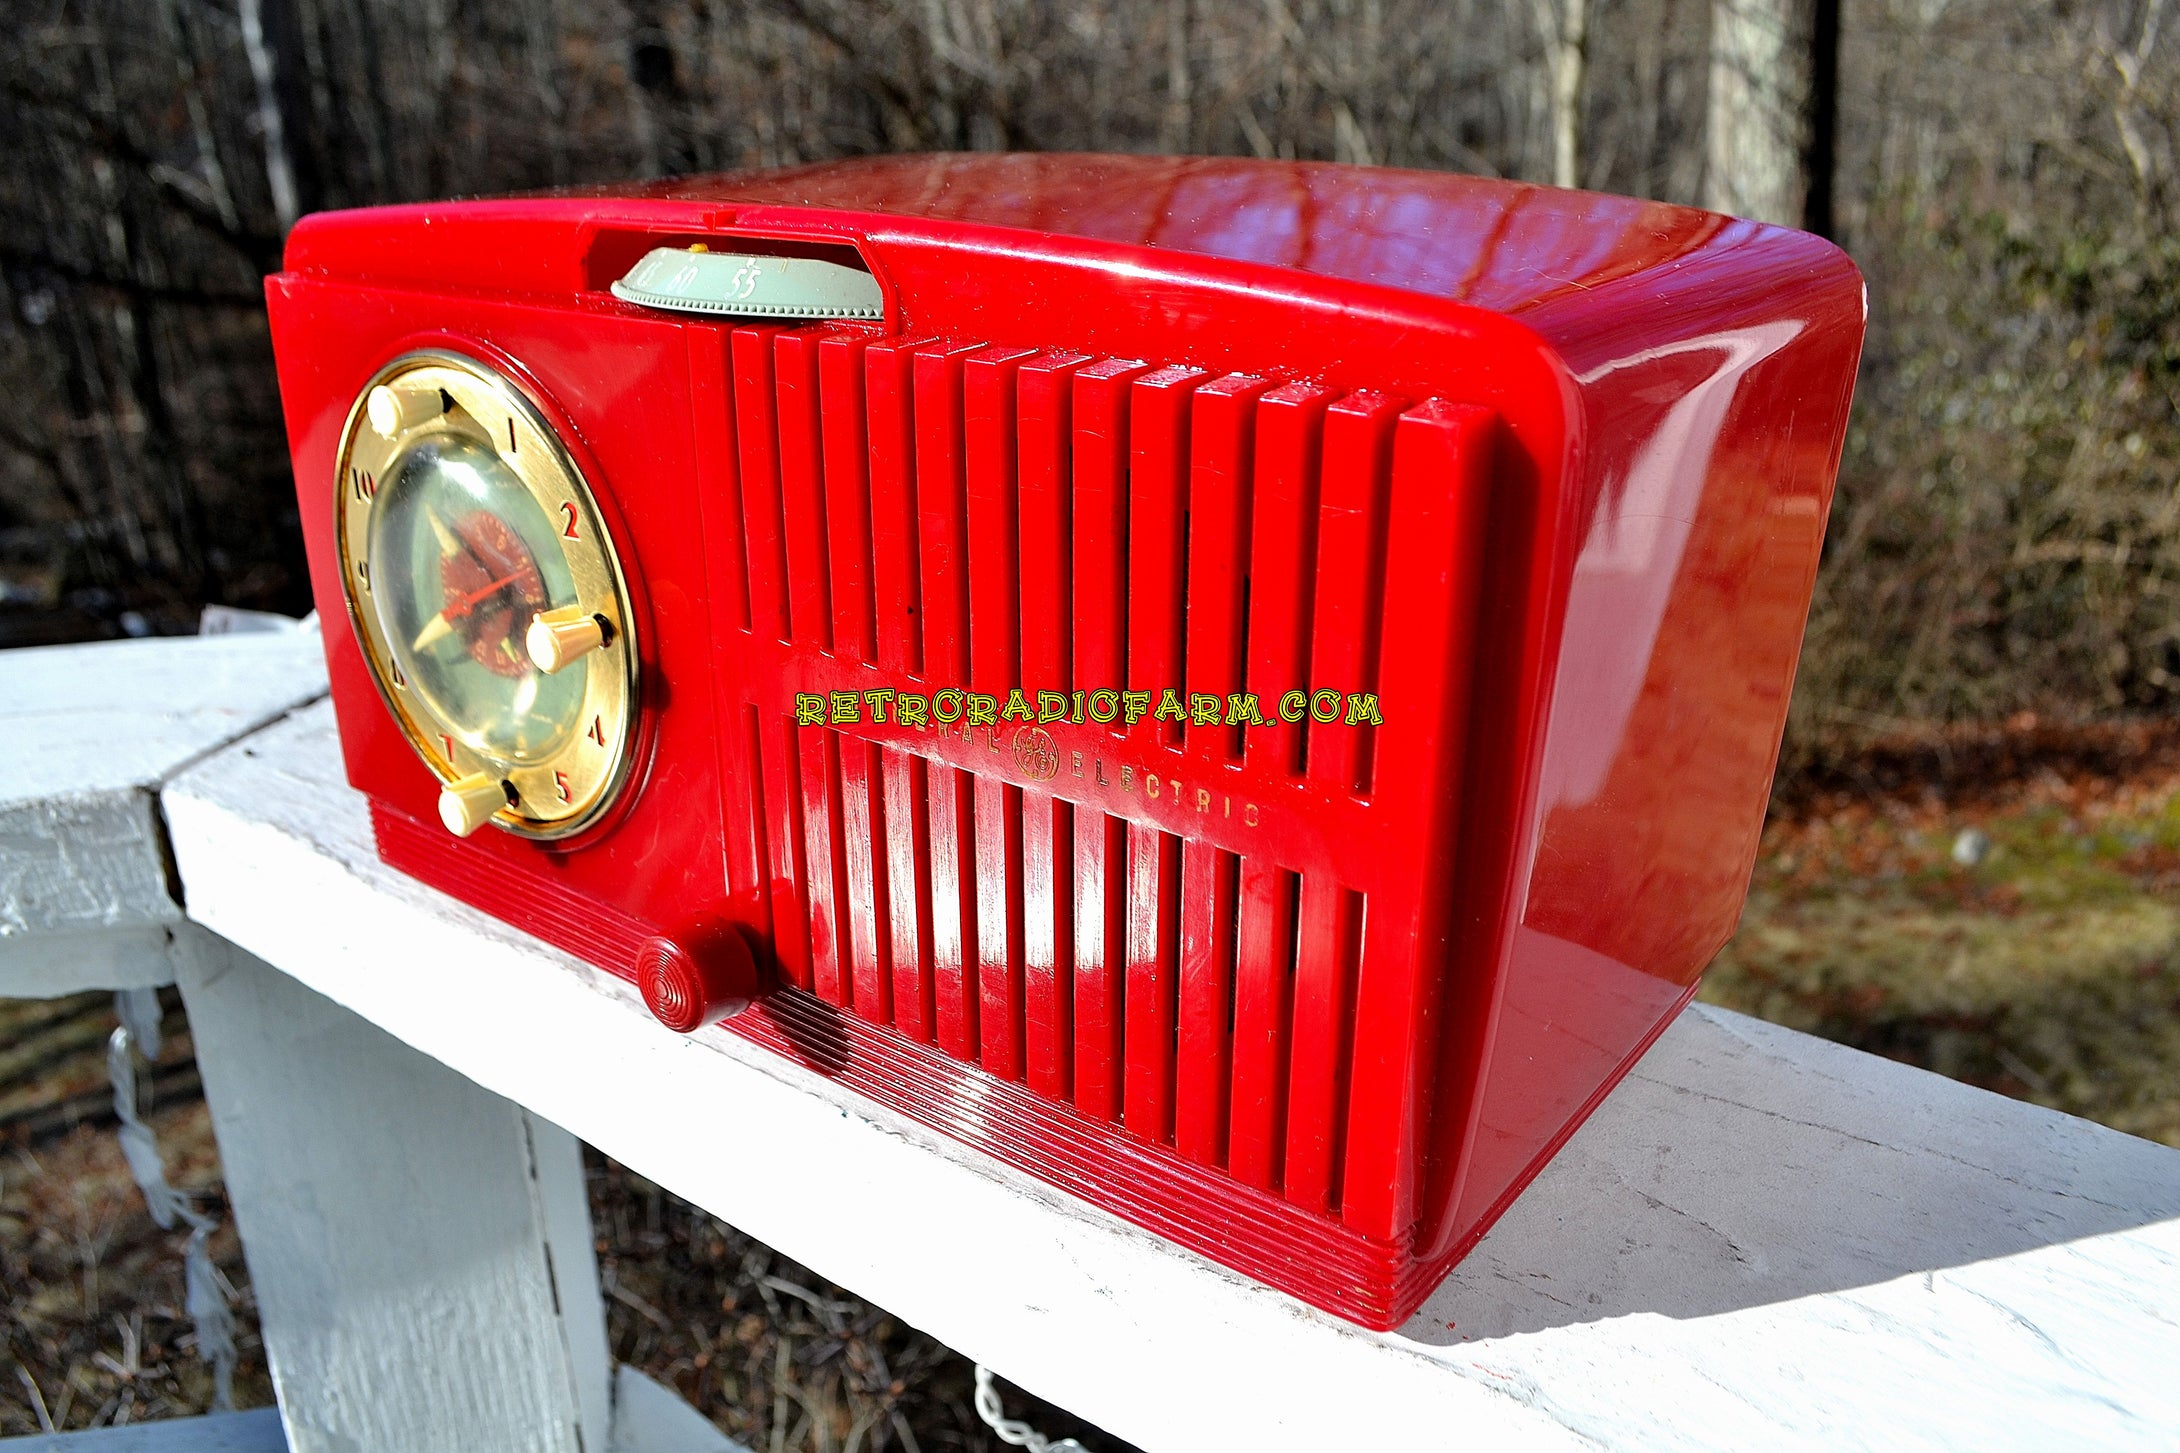 SOLD! - Feb 6, 2018 - CHERRY RED Golden Age Art Deco 1952 General Electric Model 517F AM Tube Clock Radio Sounds Amazing! - [product_type} - General Electric - Retro Radio Farm